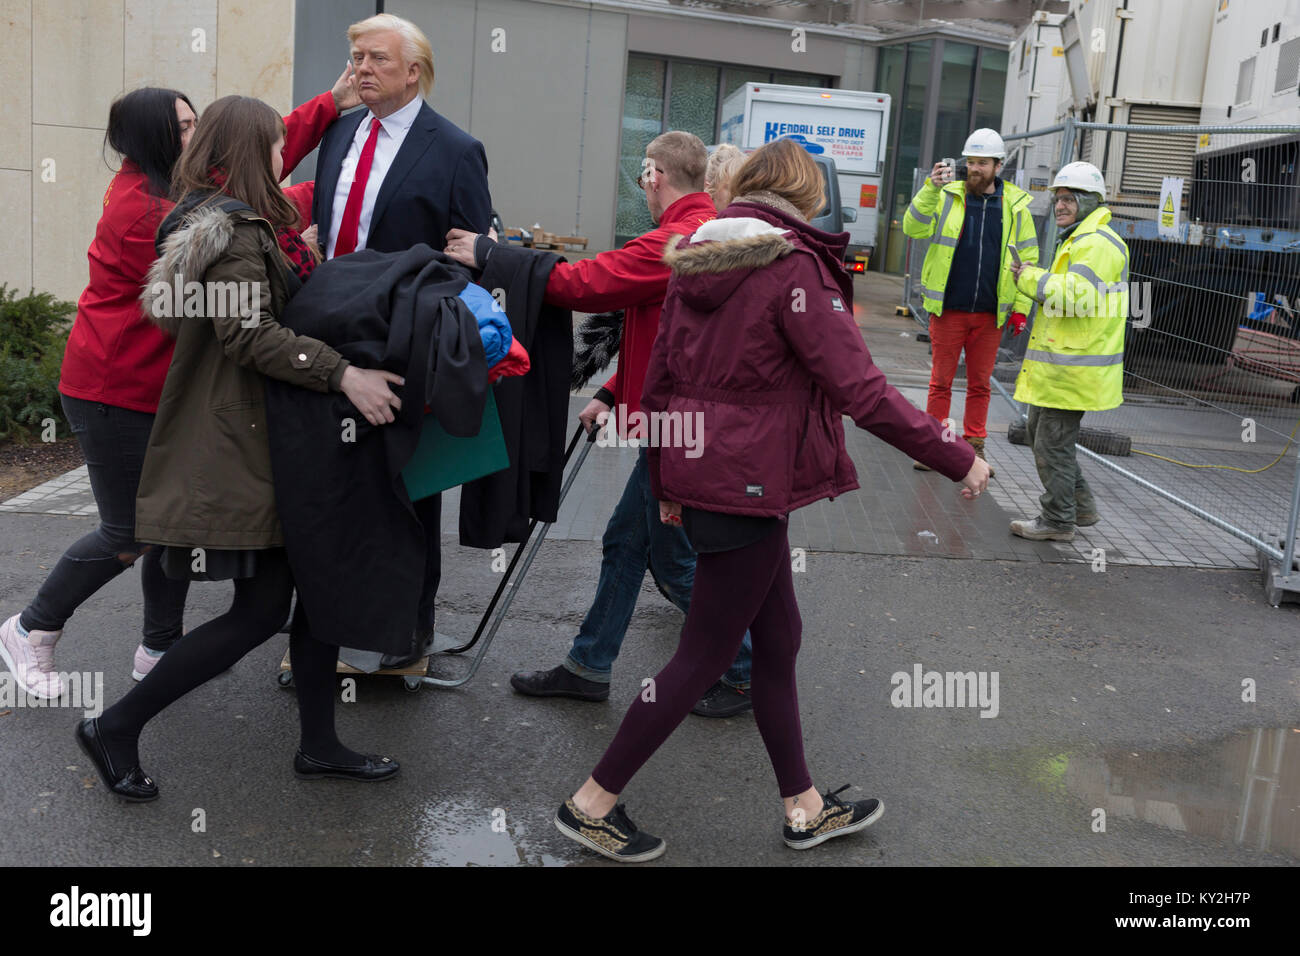 London, 12th January 2018: The waxwork of Donald Trump is carried to the US Embassy at Nine Elms in south London Stock Photo